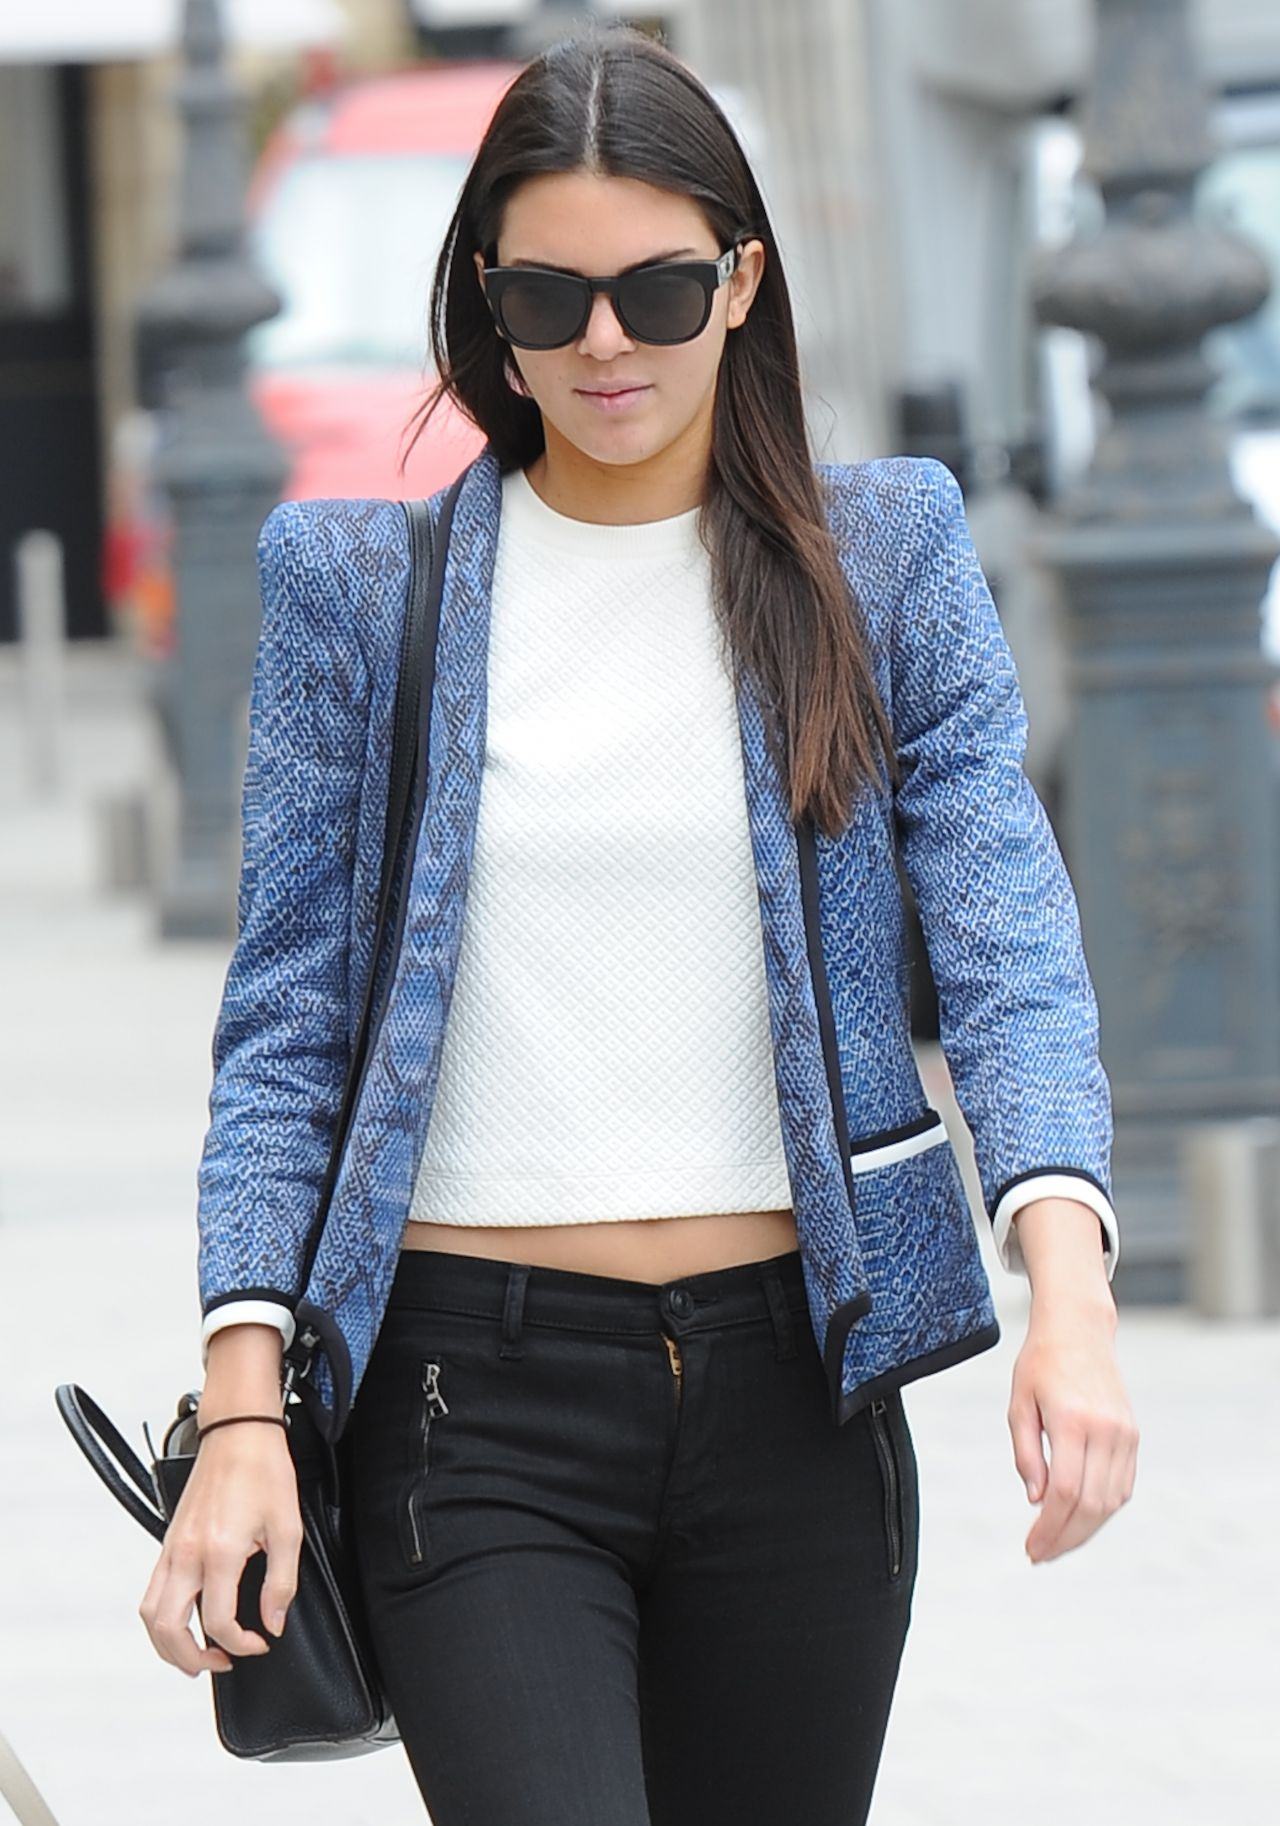 Kendall Jenner Shopping in Paris - July 2014